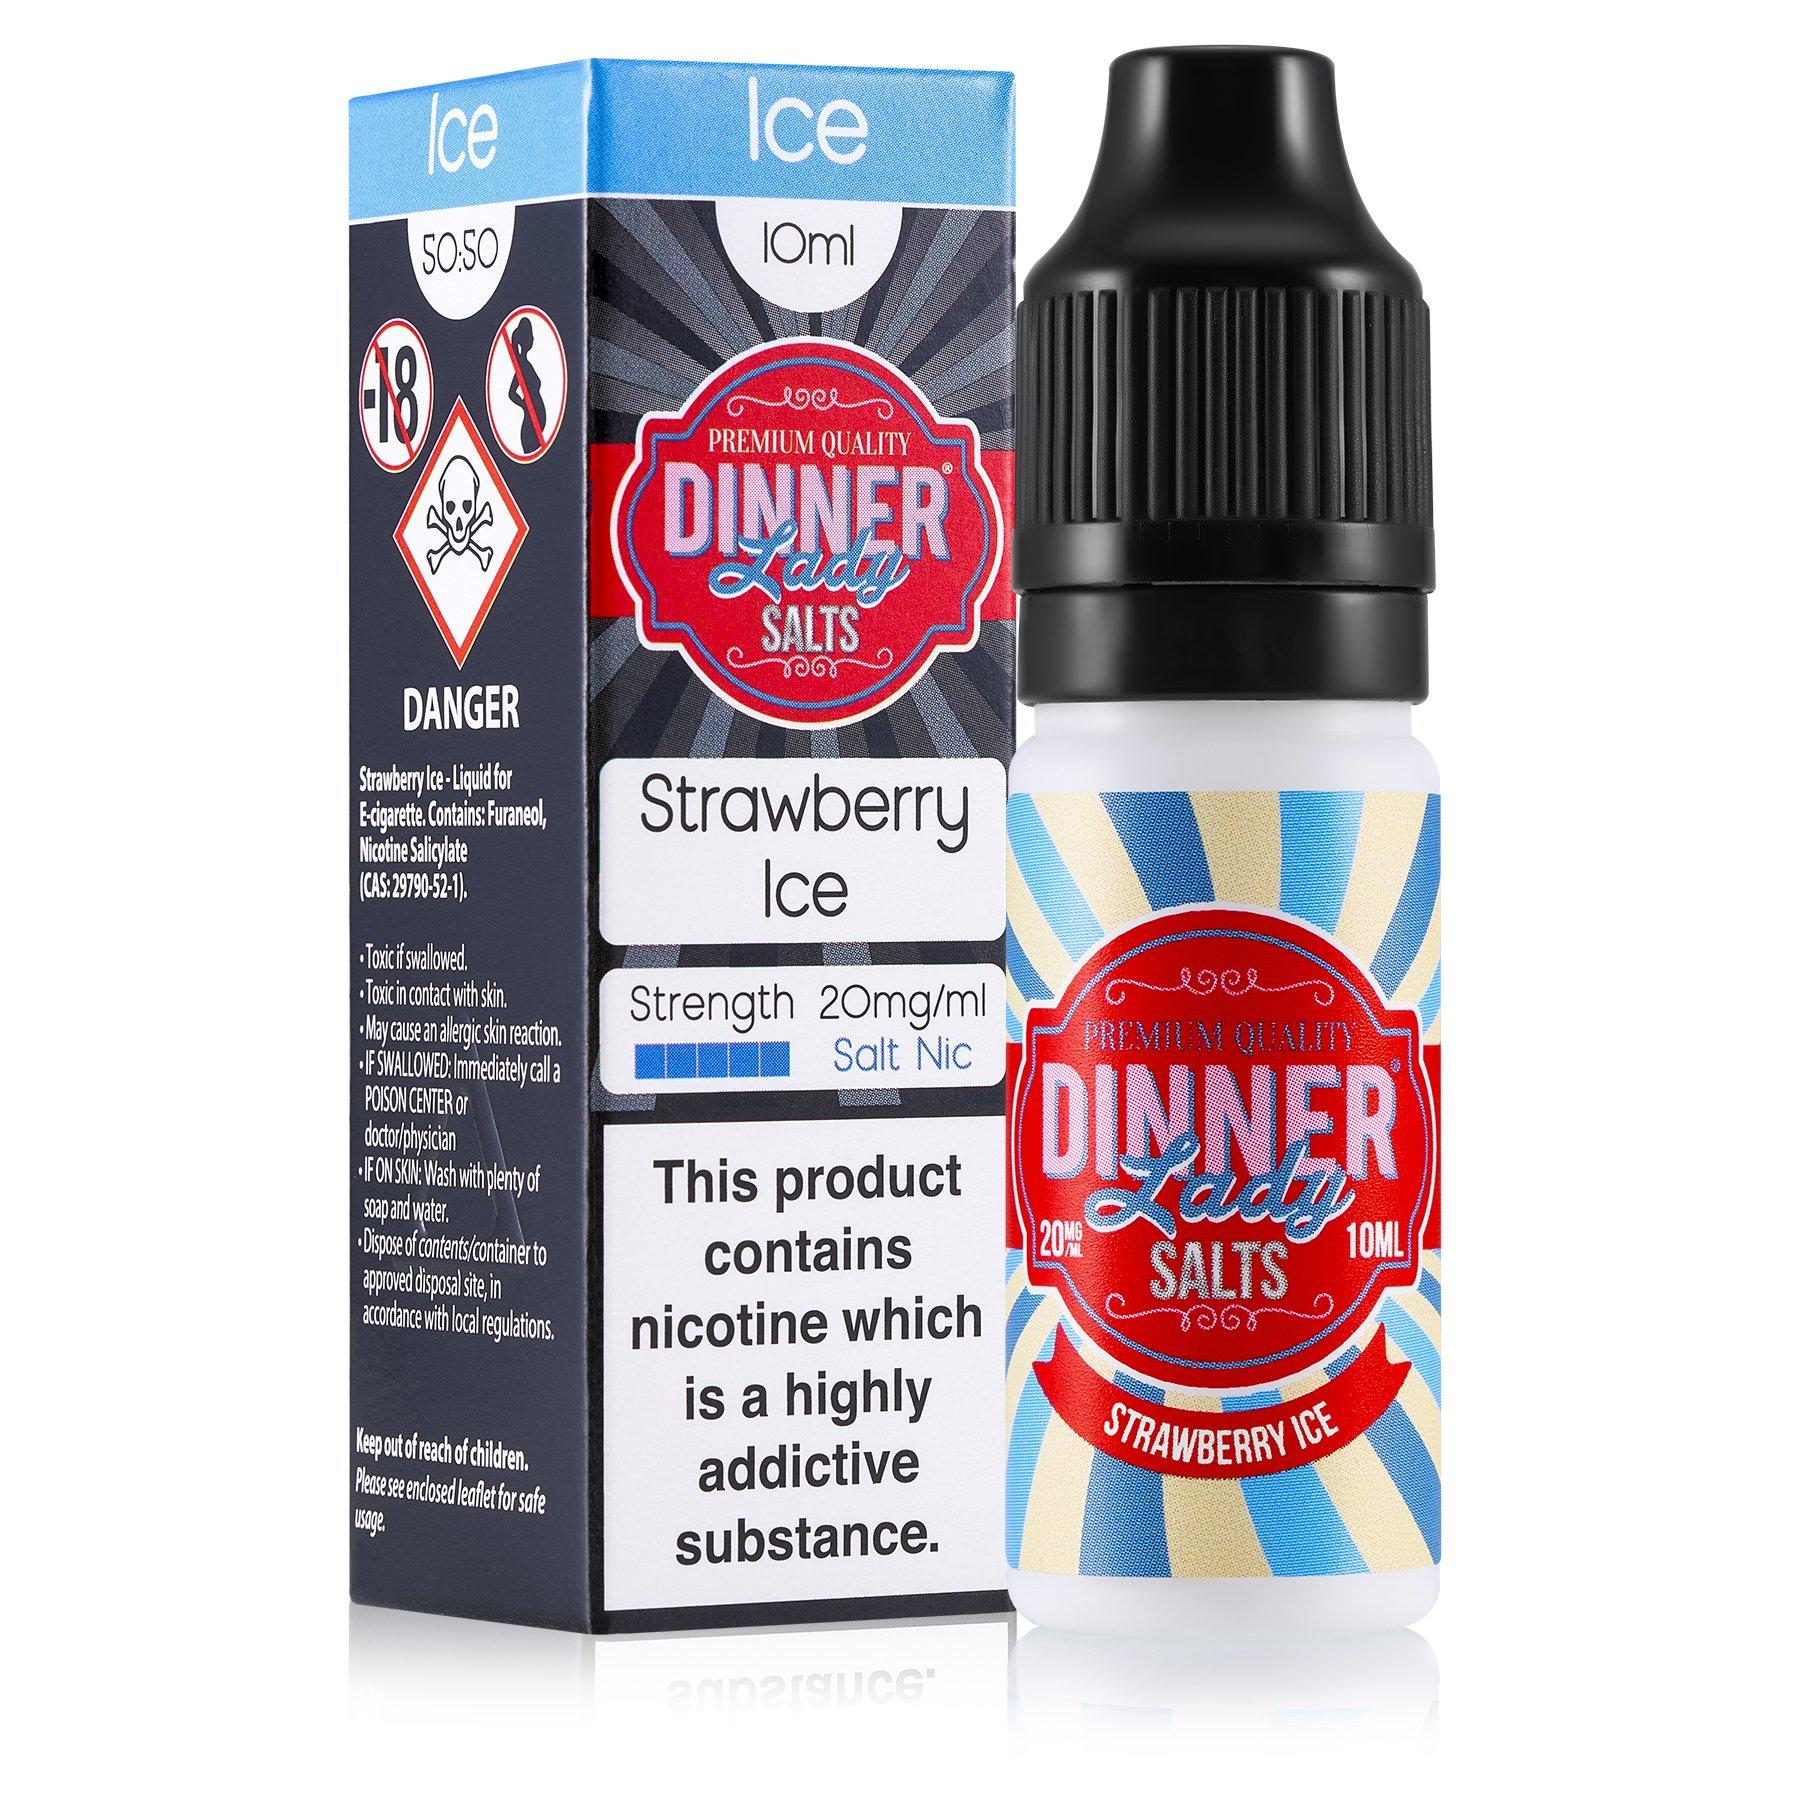 Dinner Lady Salt Nic 10ml Strawberry Ice e-liquid available from Which Vape Ltd